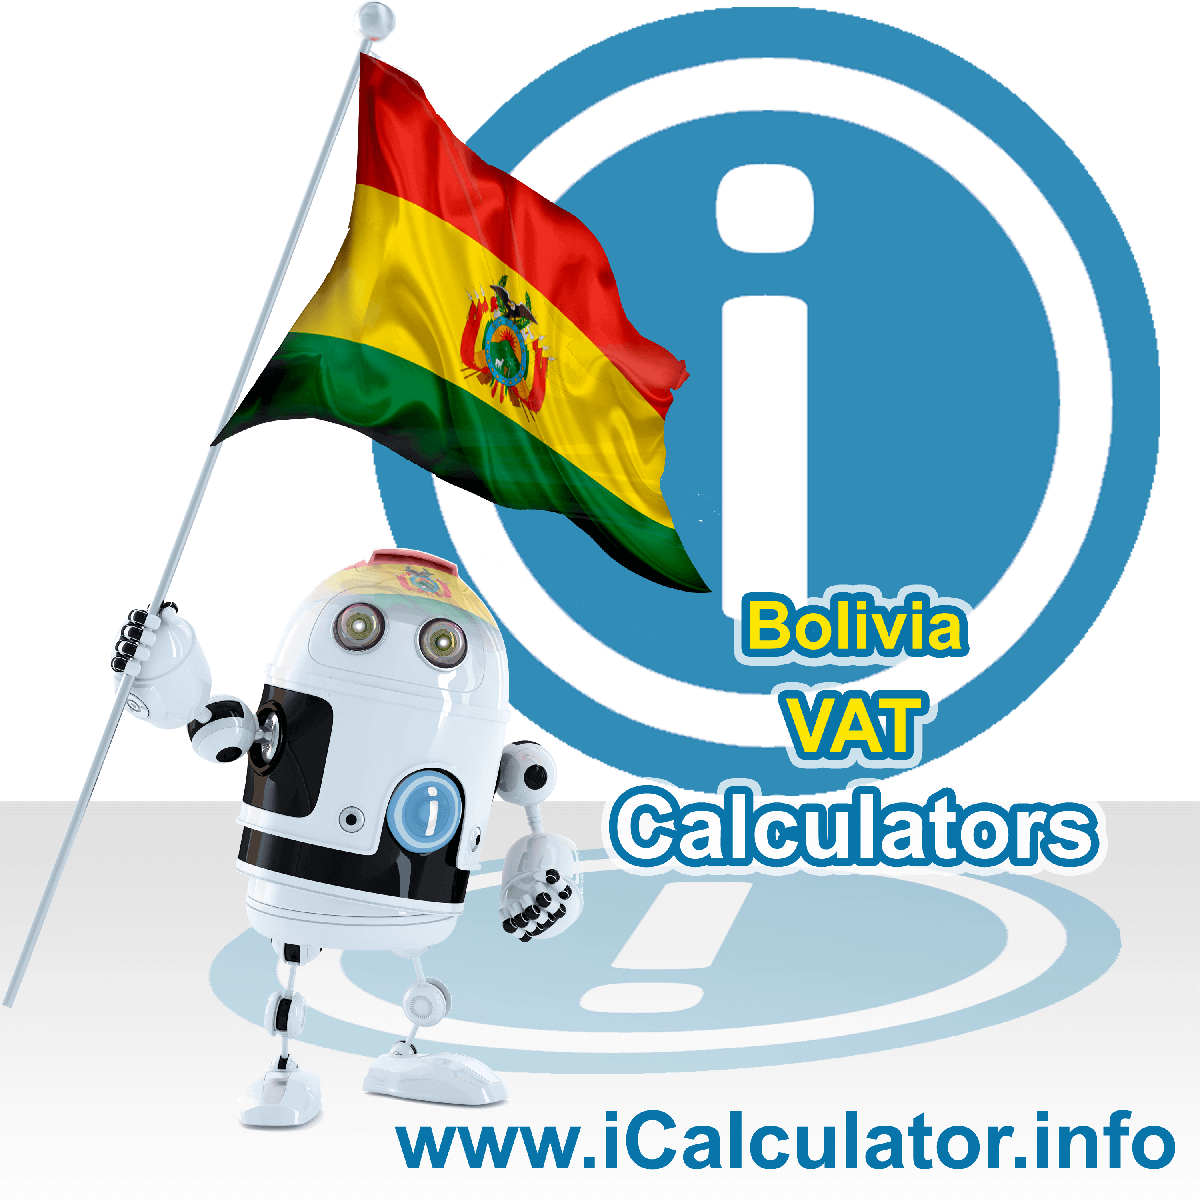 Bolivia VAT Calculator. This image shows the Bolivia flag and information relating to the VAT formula used for calculating Value Added Tax in Bolivia using the Bolivia VAT Calculator in 2020